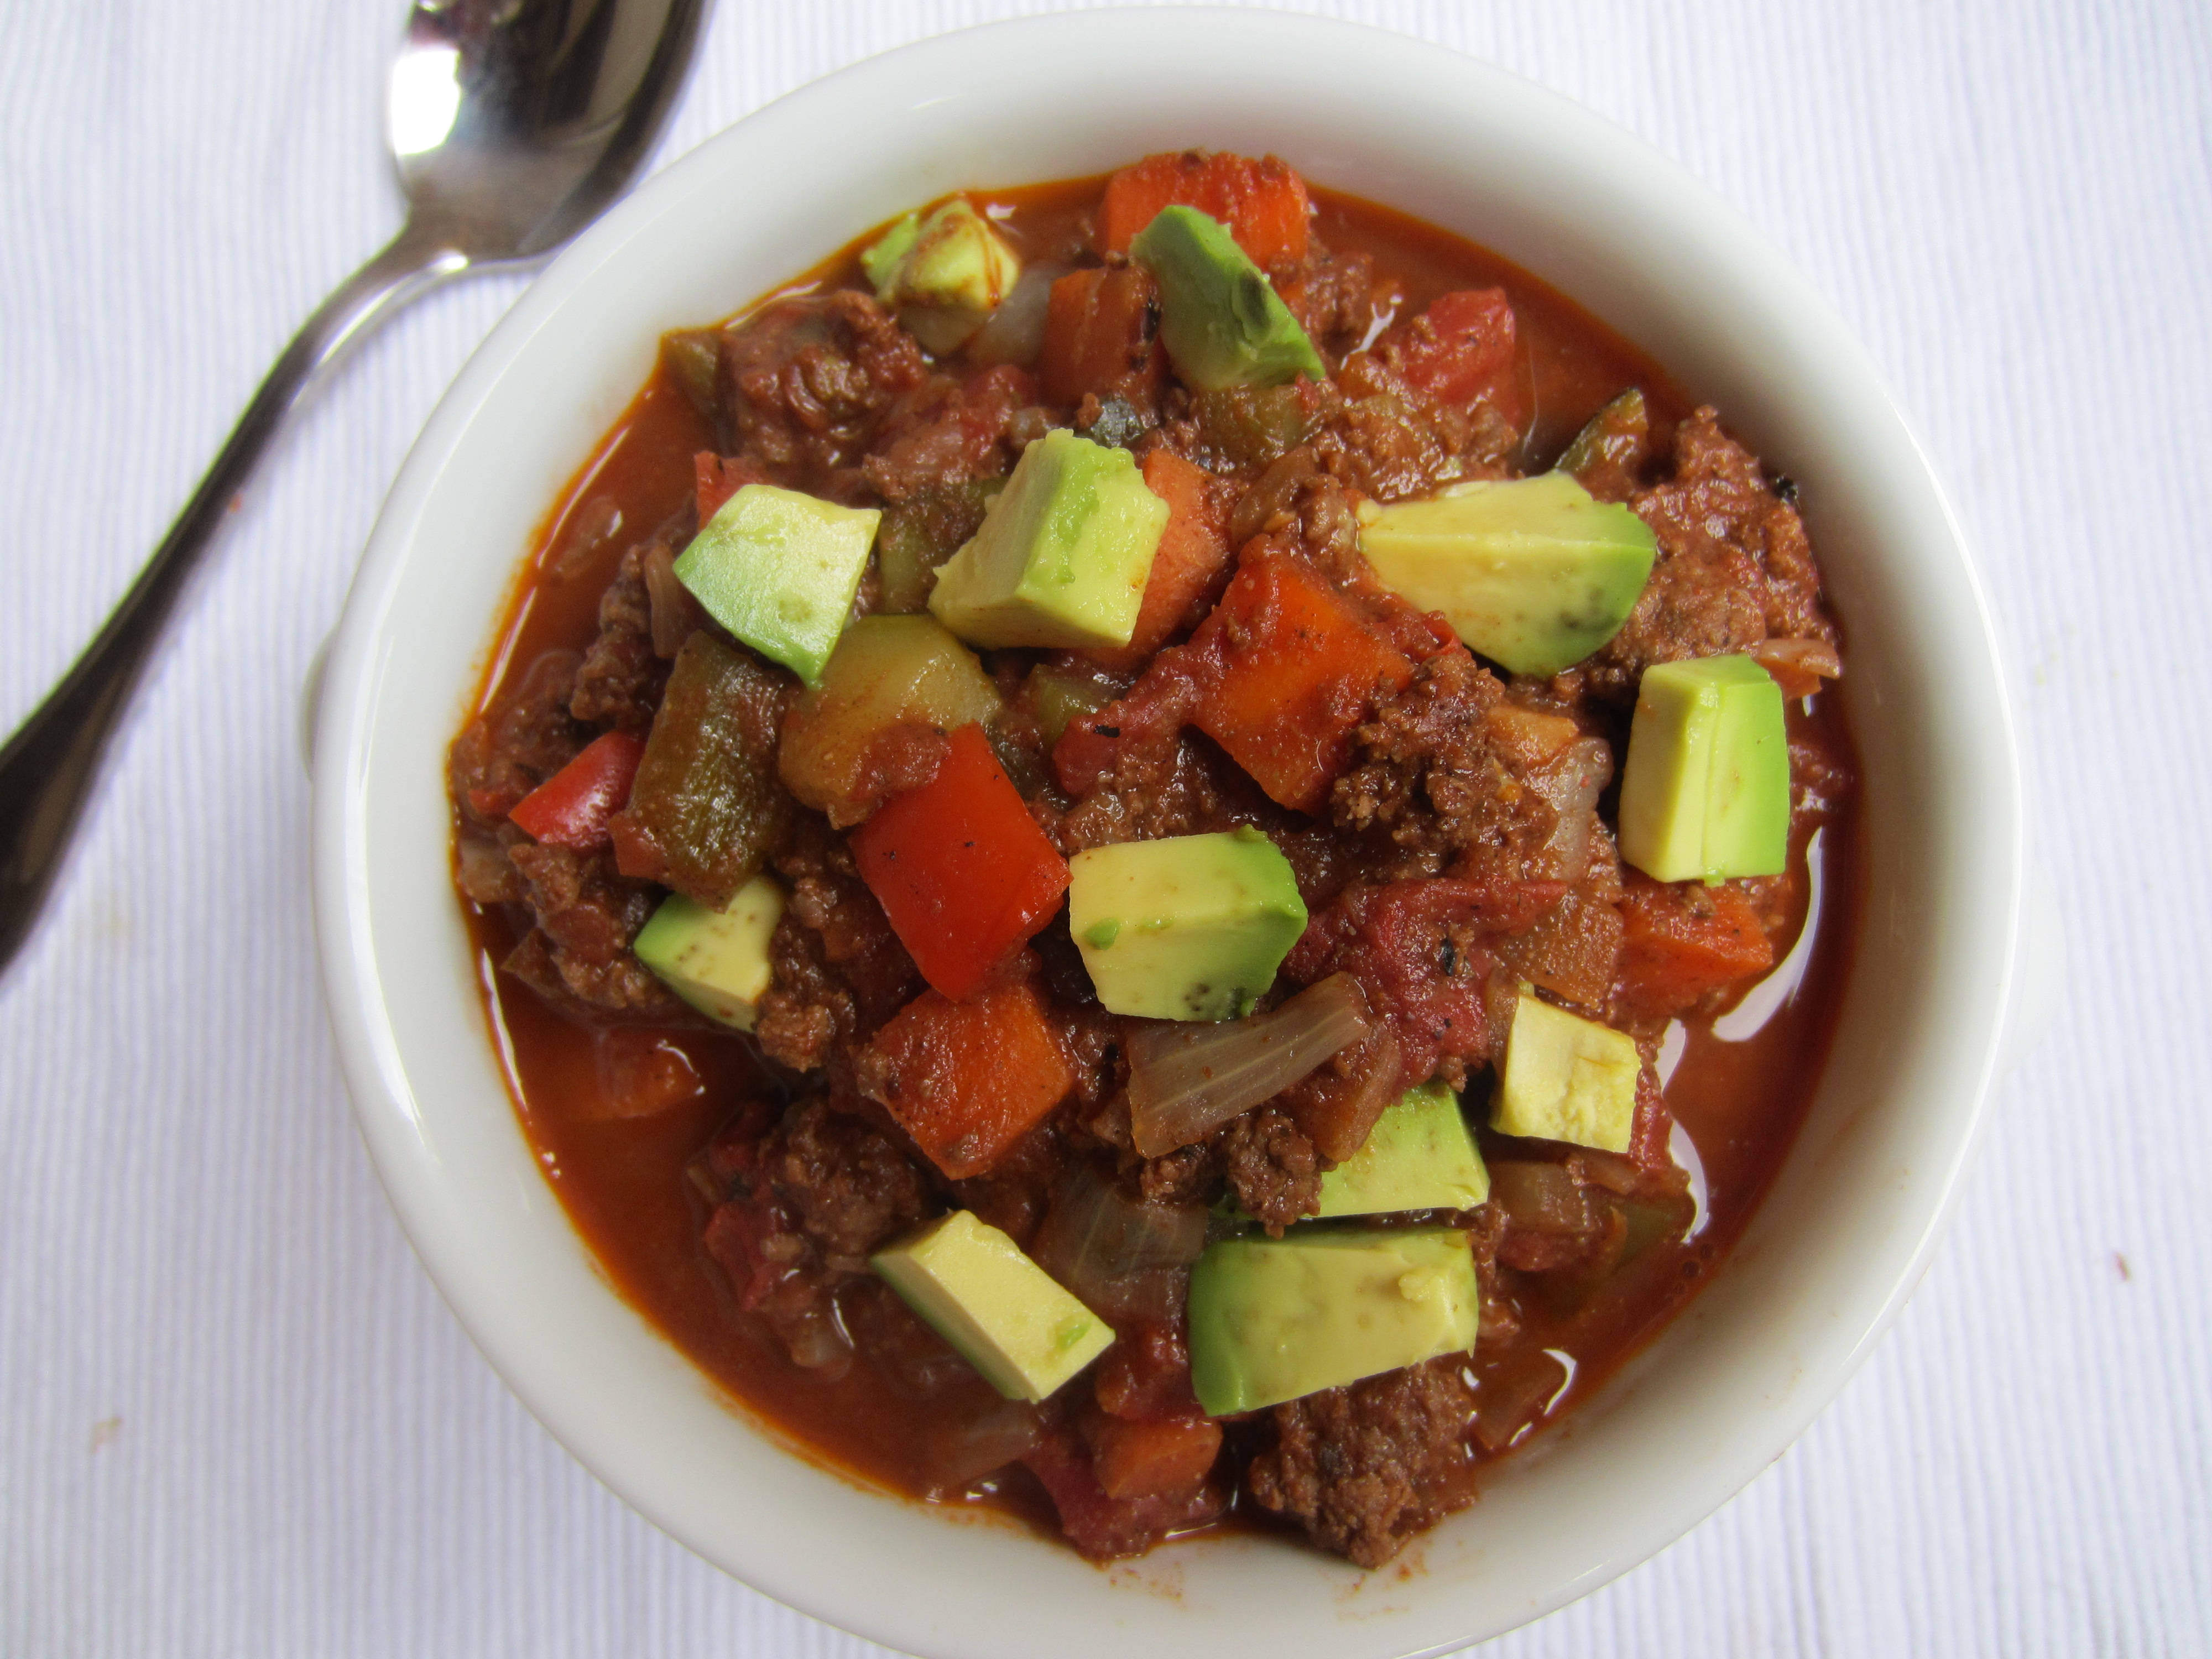 Veggie-Packed Meaty Chili from www.meganopel.com